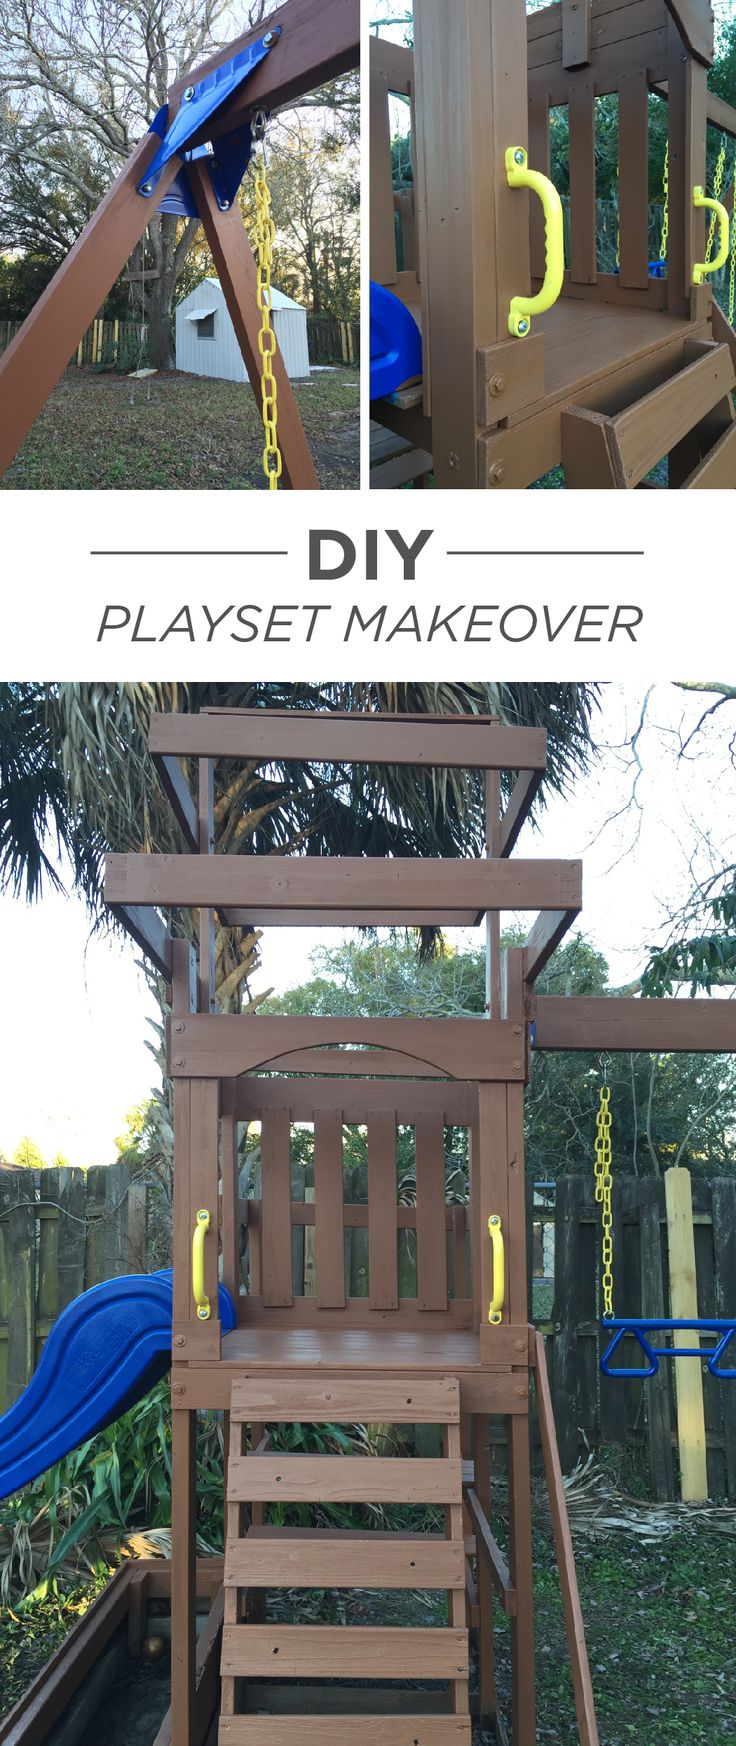 Give the outdated jungle gym a fresh update with project inspiration from this DIY playset makeover by blogger Hello Yina Brown. Your kids are sure to enjoy a fun new outdoor activity this spring.